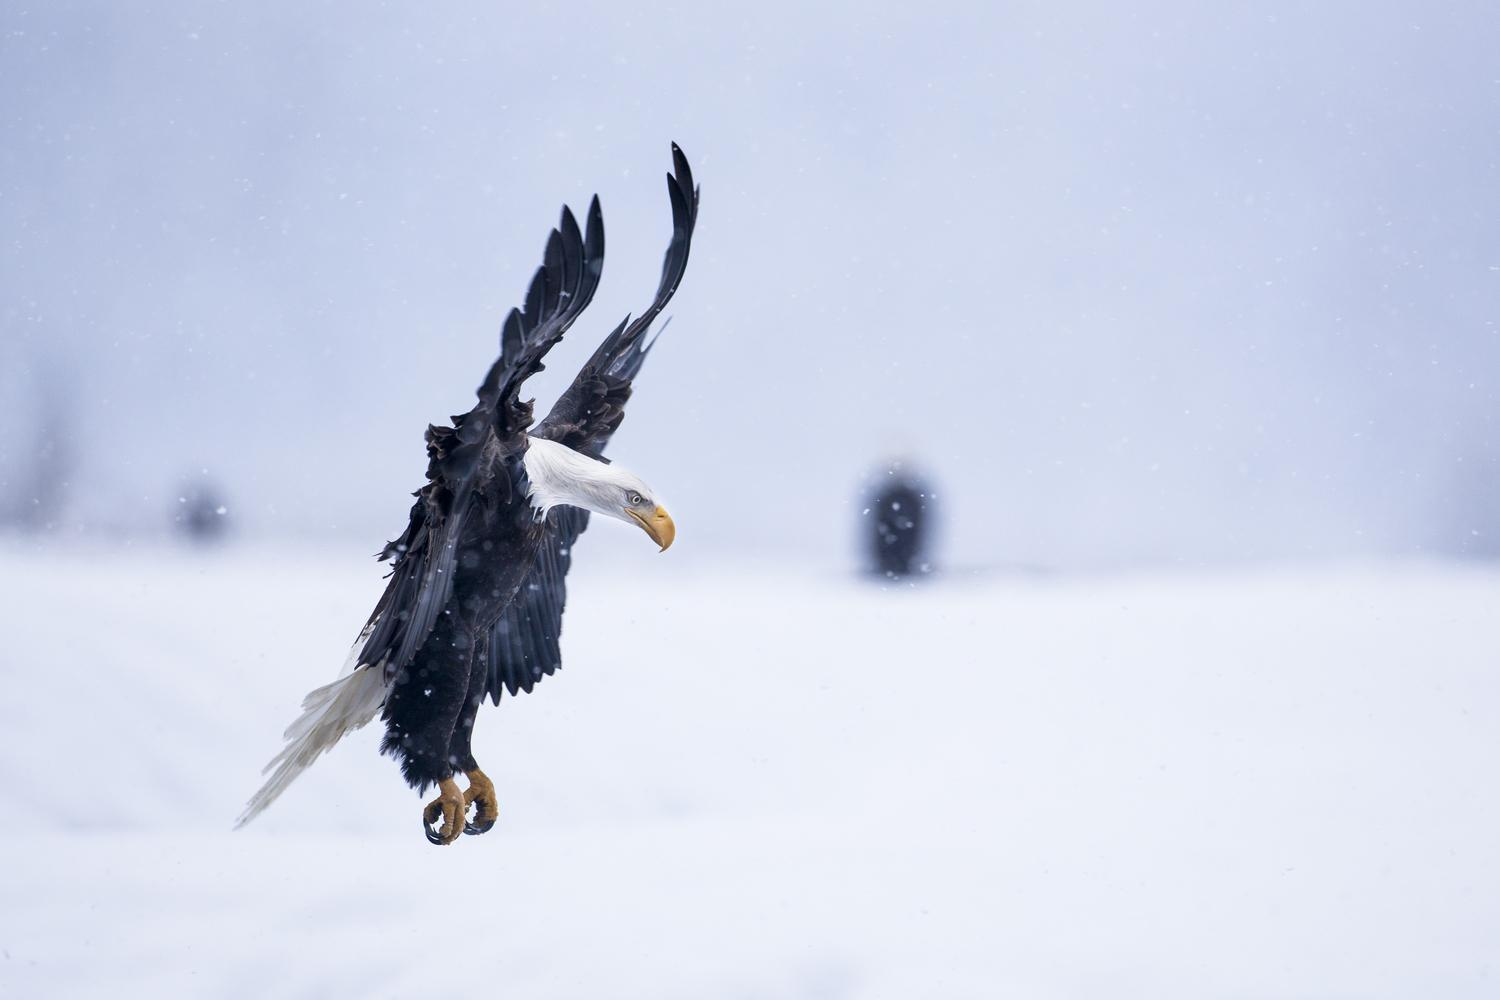 stock-photo-bald-eagle-landing-in-snowstorm-18166129